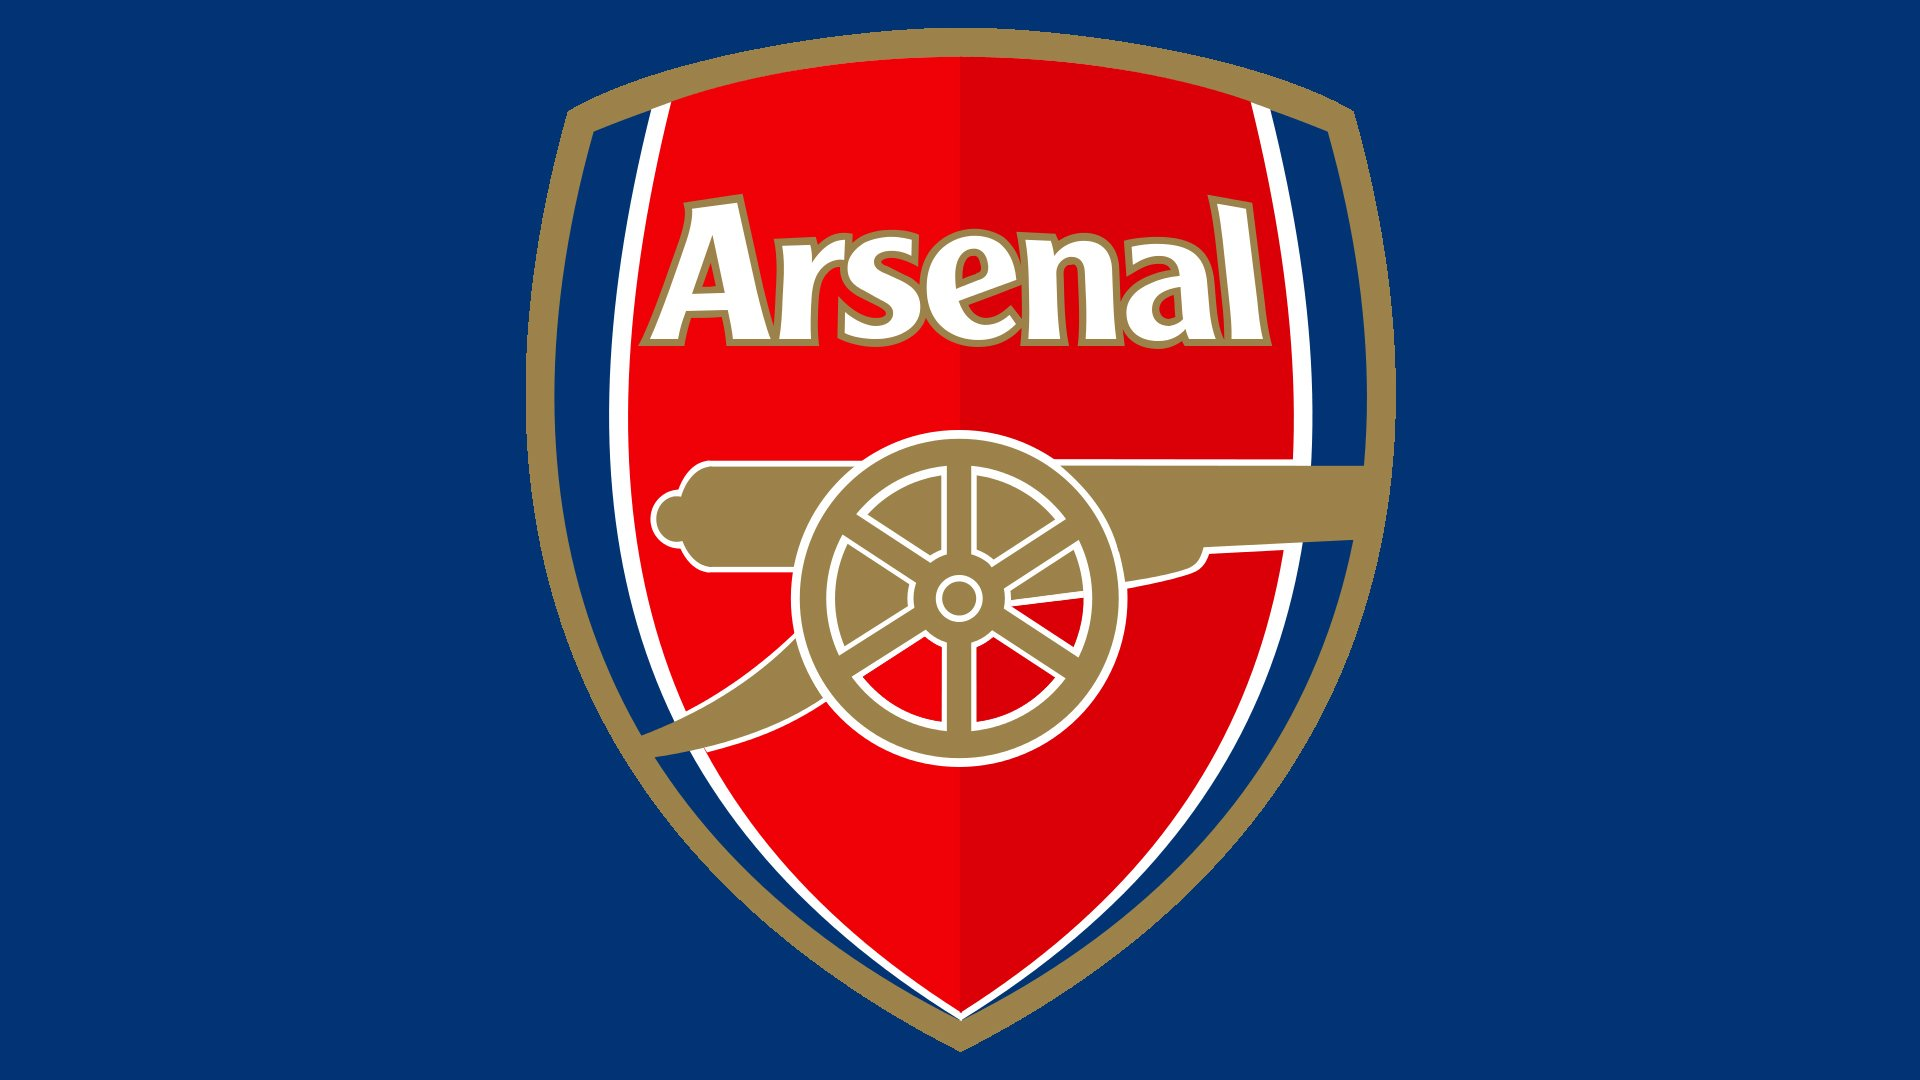 Arsenal: Arsenal Logo, Arsenal Symbol Meaning, History And Evolution